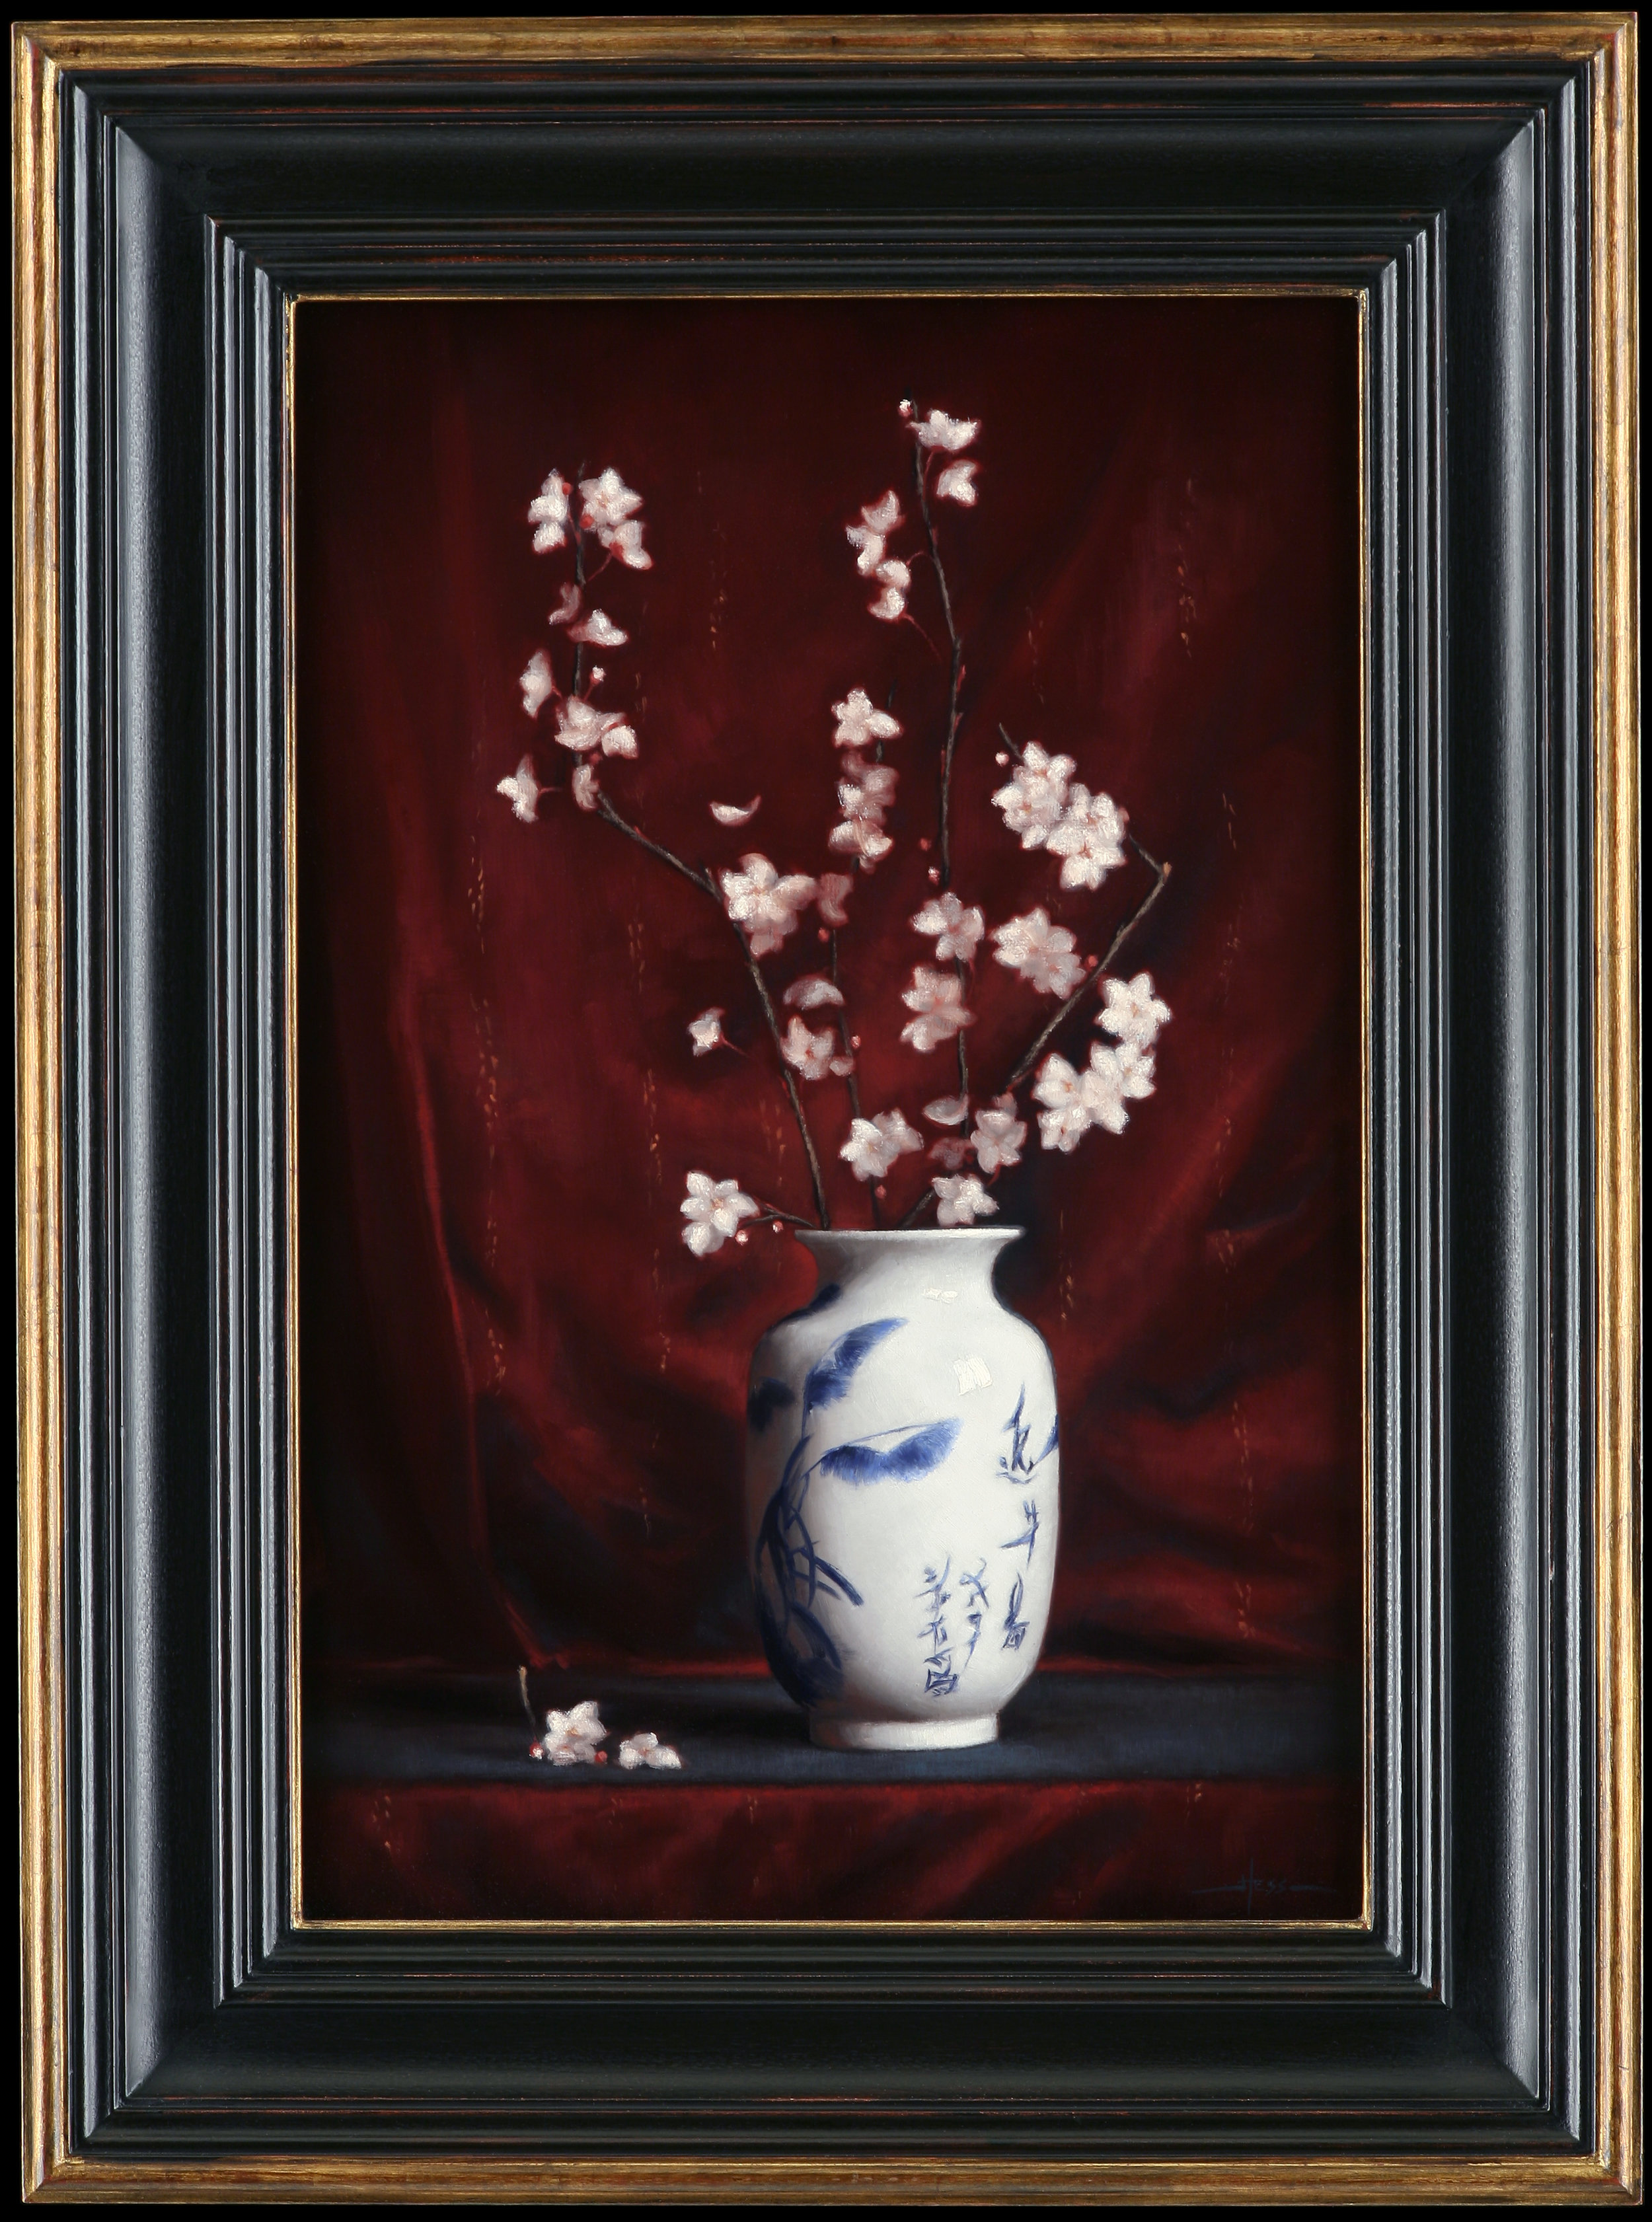 Chinese Vase with Almond Blossoms (Frame).jpg